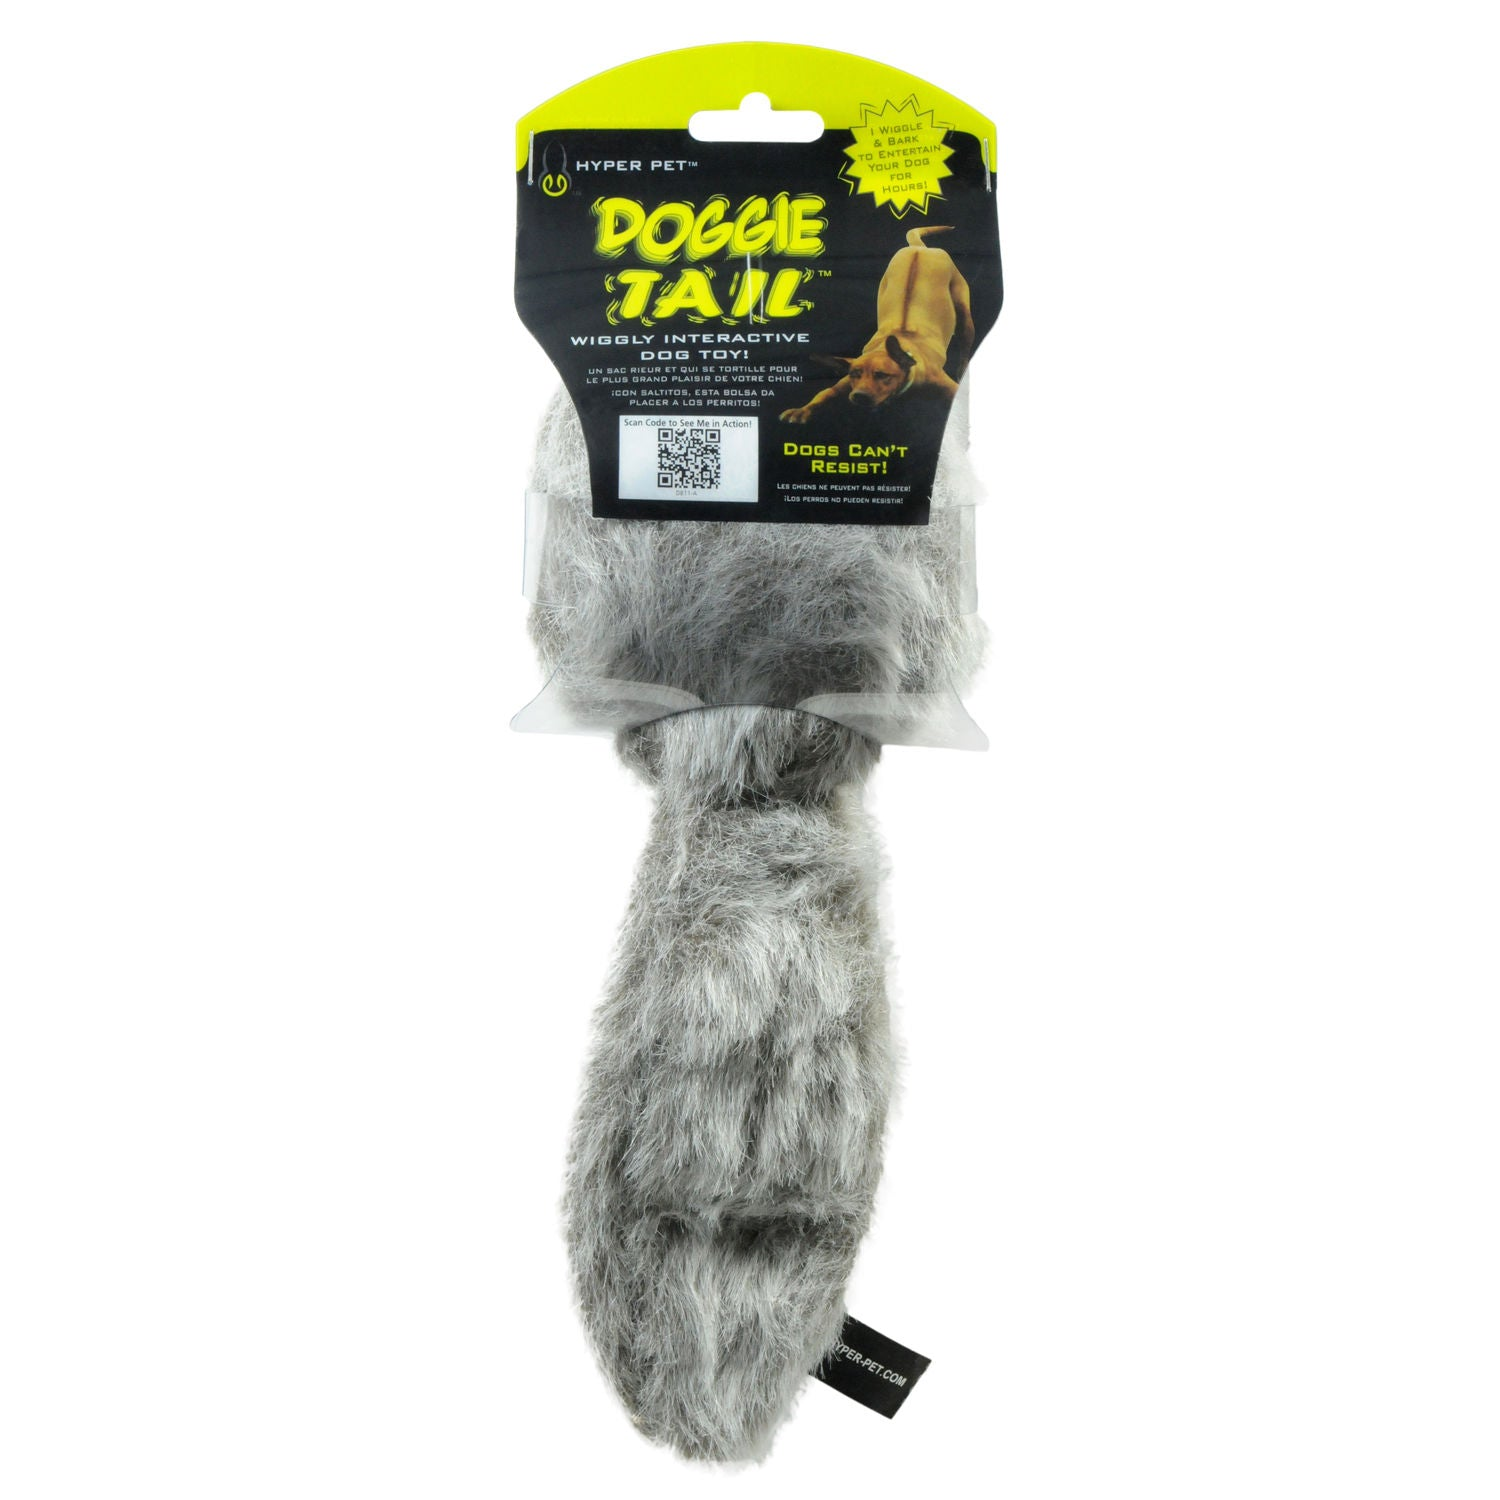 Hyper Pet HYP49484 Doggie Tail Dog Toy